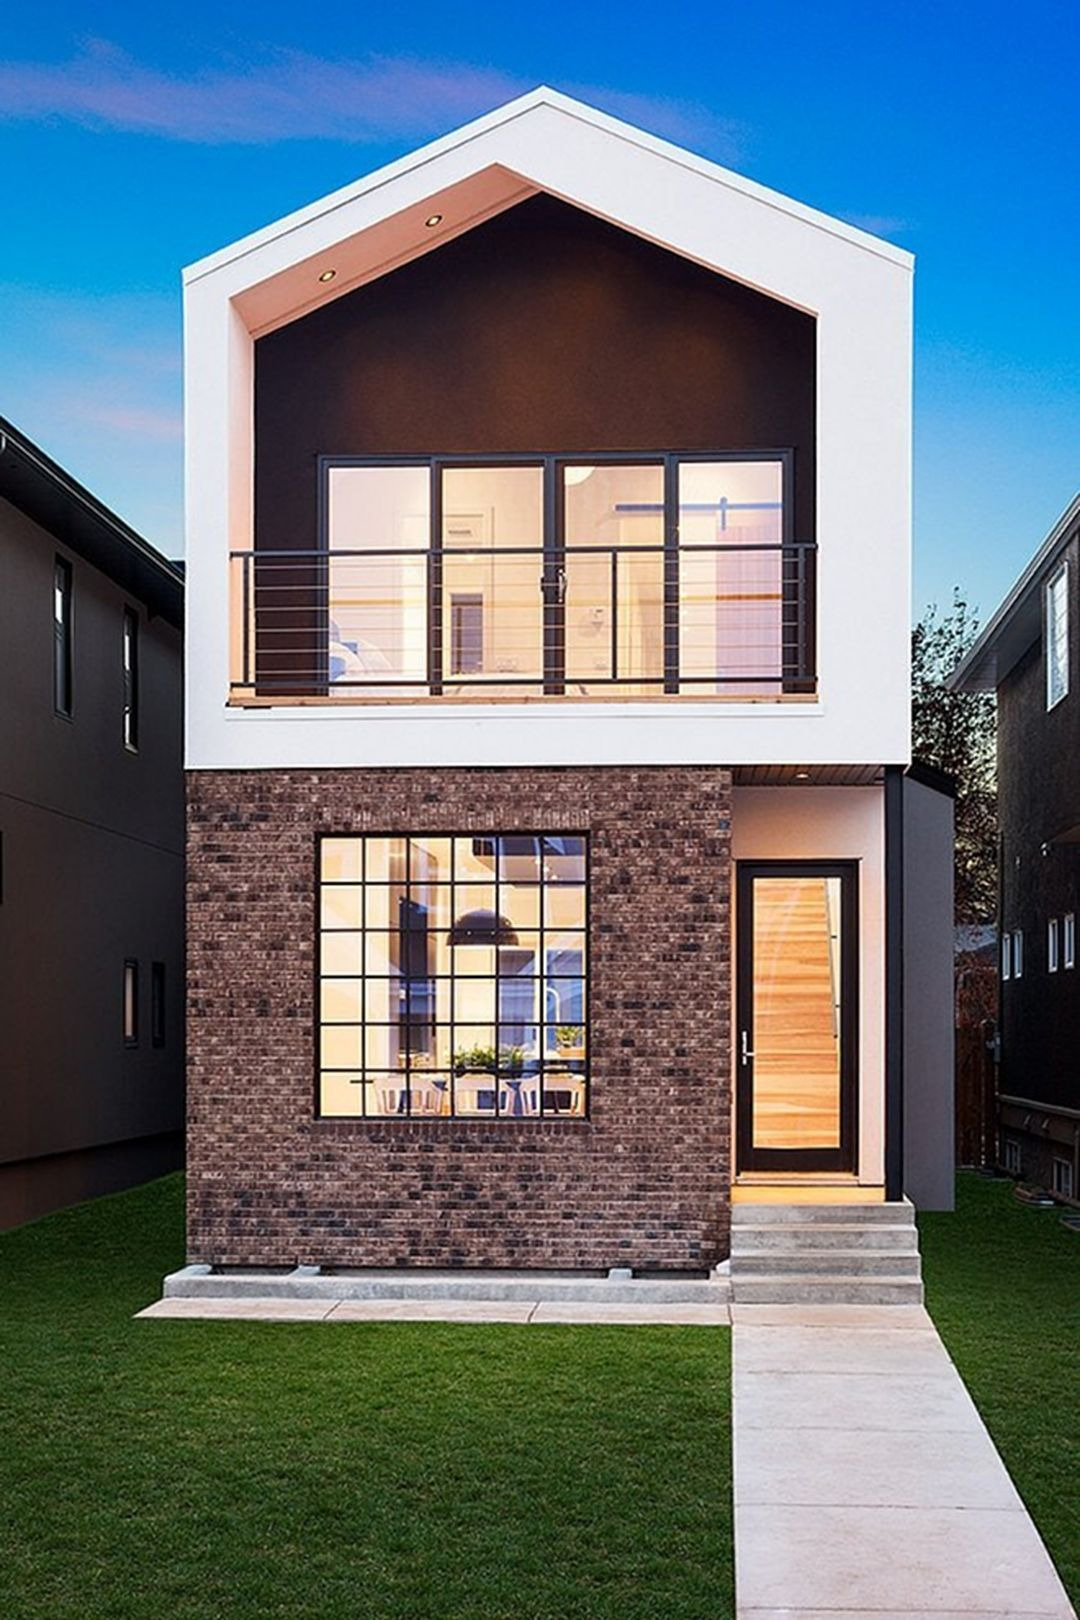 Small Modern House Designs Inspirational 25 Awesome Modern Tiny Houses Design Ideas for Simple and